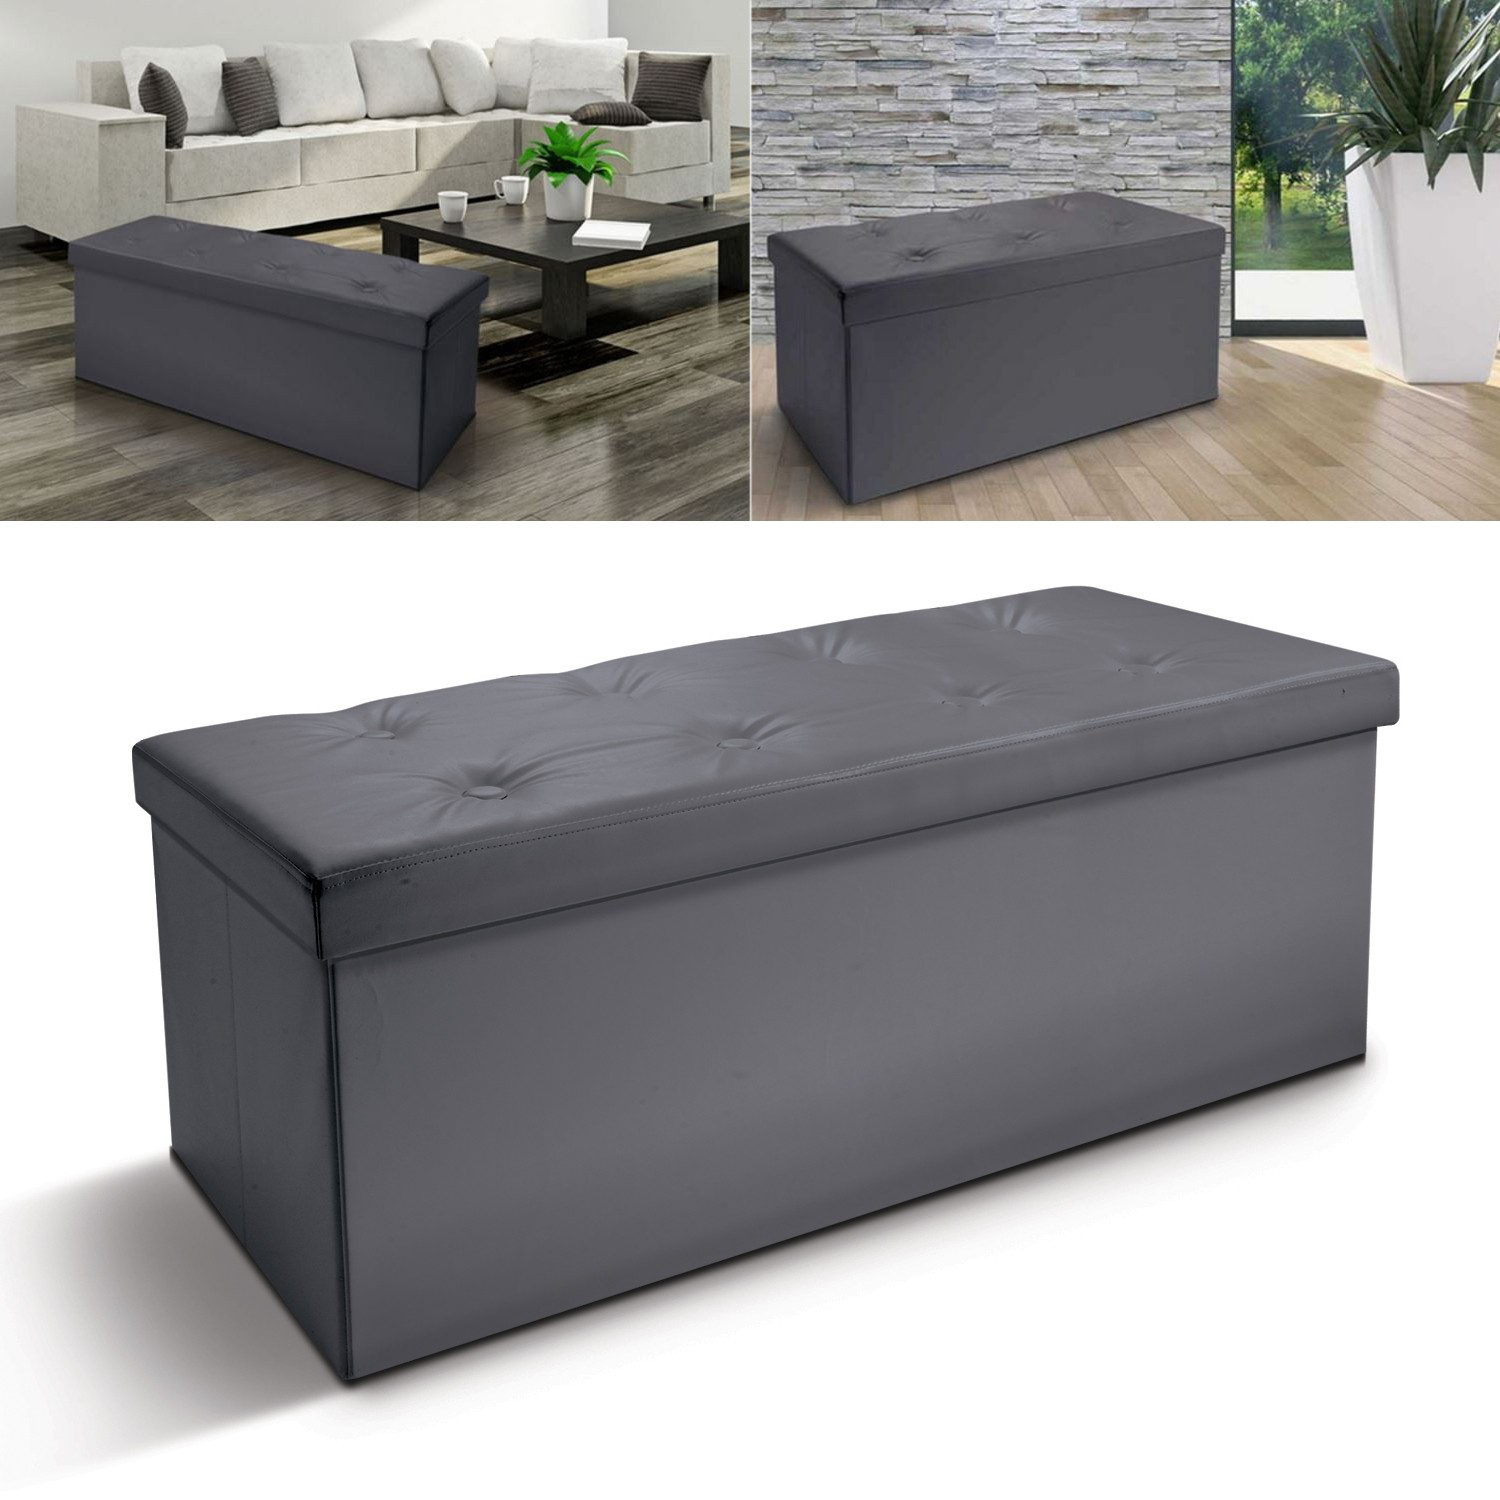 banc coffre rangement pvc gris 76x38x38 cm pliable accessoires mai. Black Bedroom Furniture Sets. Home Design Ideas